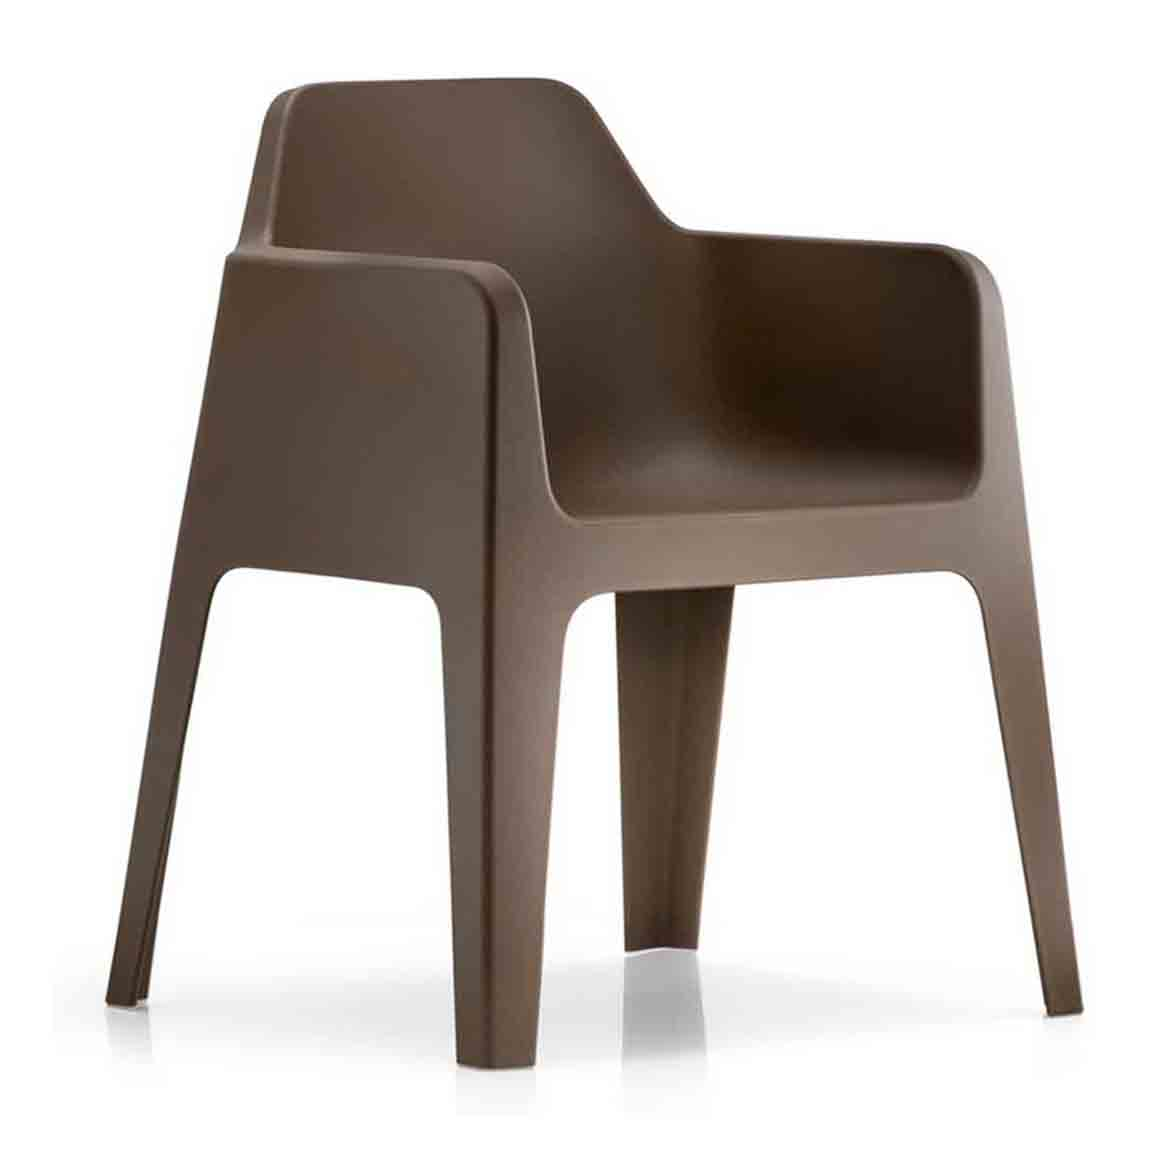 Polypropylene frame with matt finish.Available colours: white, beige, anthracite grey, brown, green and orange. Stackable. Same as the stucture. Available also with seat cushion.